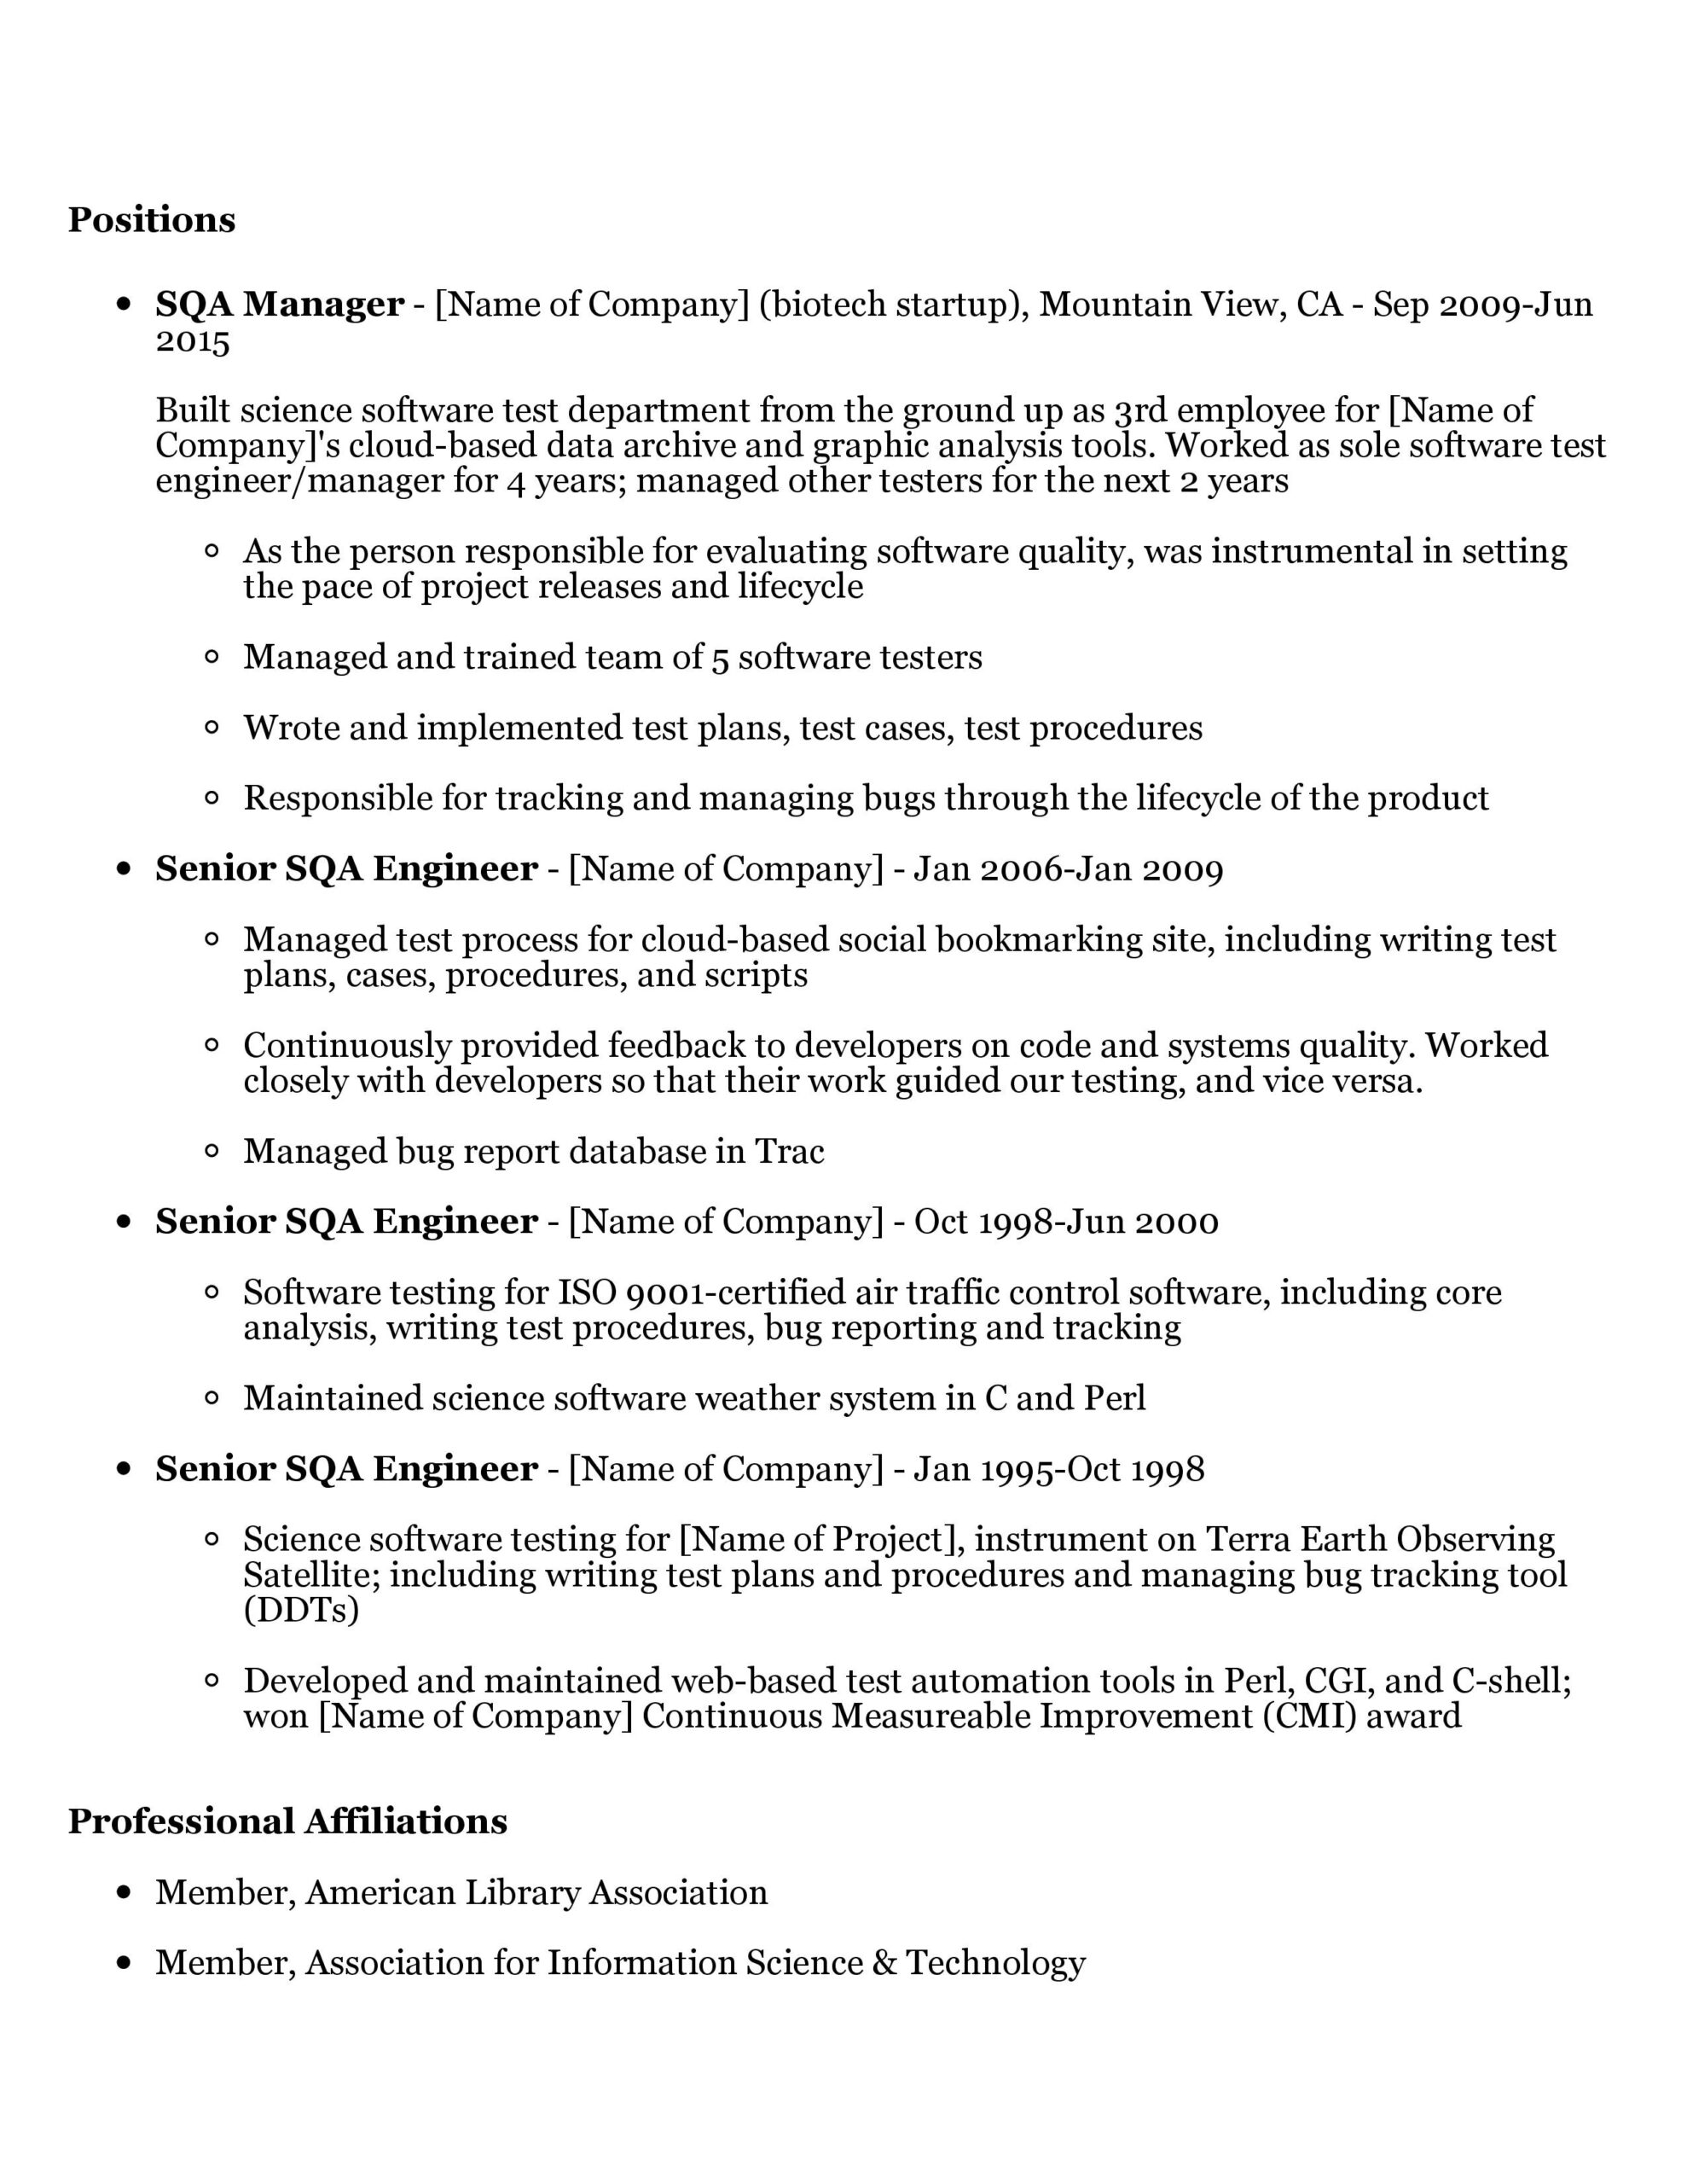 cv review hiring librarians professional resume for usajobs government template cover Resume Professional Resume Review